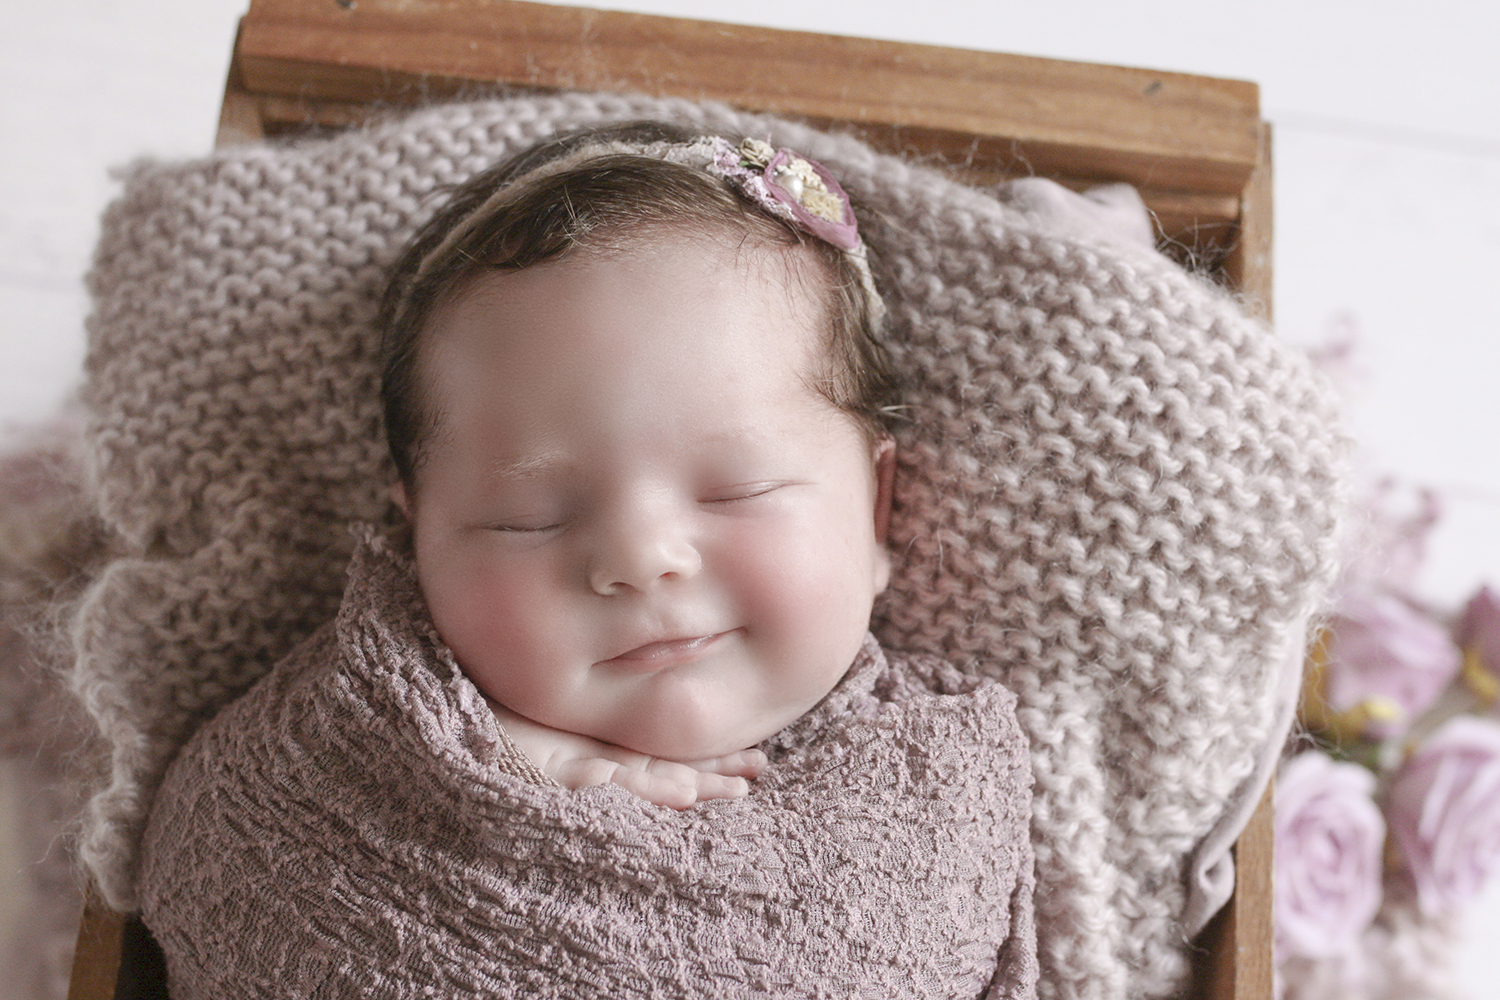 Newborn baby girl sleeping in wooden crate with purple blanket and wrap and knit layer and tieback